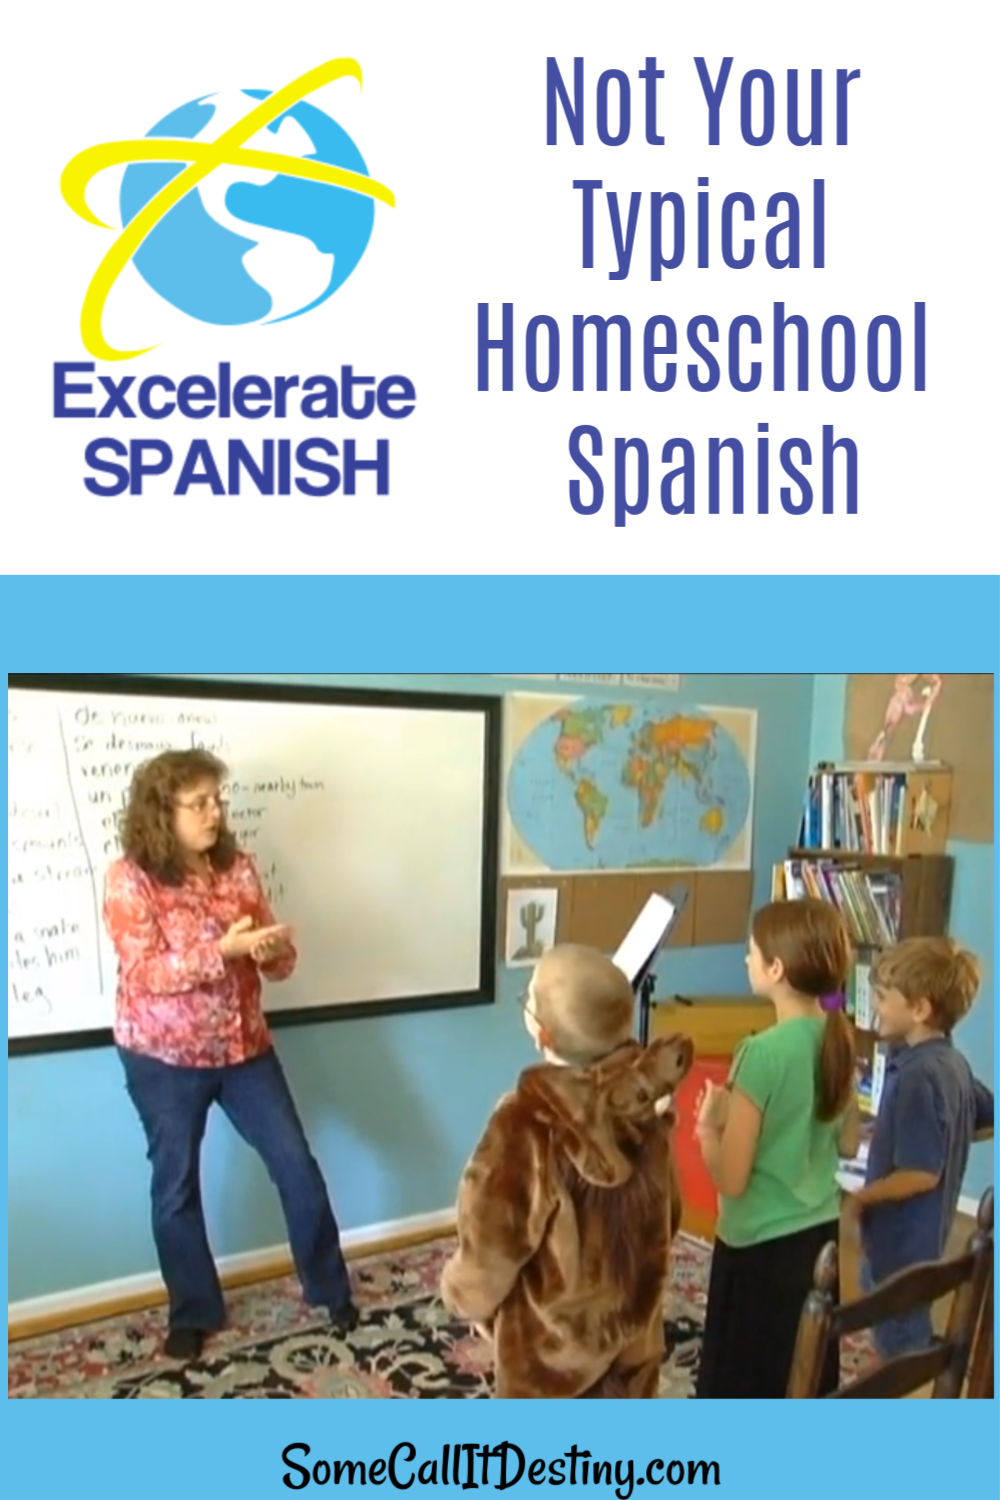 Excelerate Spanish Homeschool Foreign Language Course Excelerate